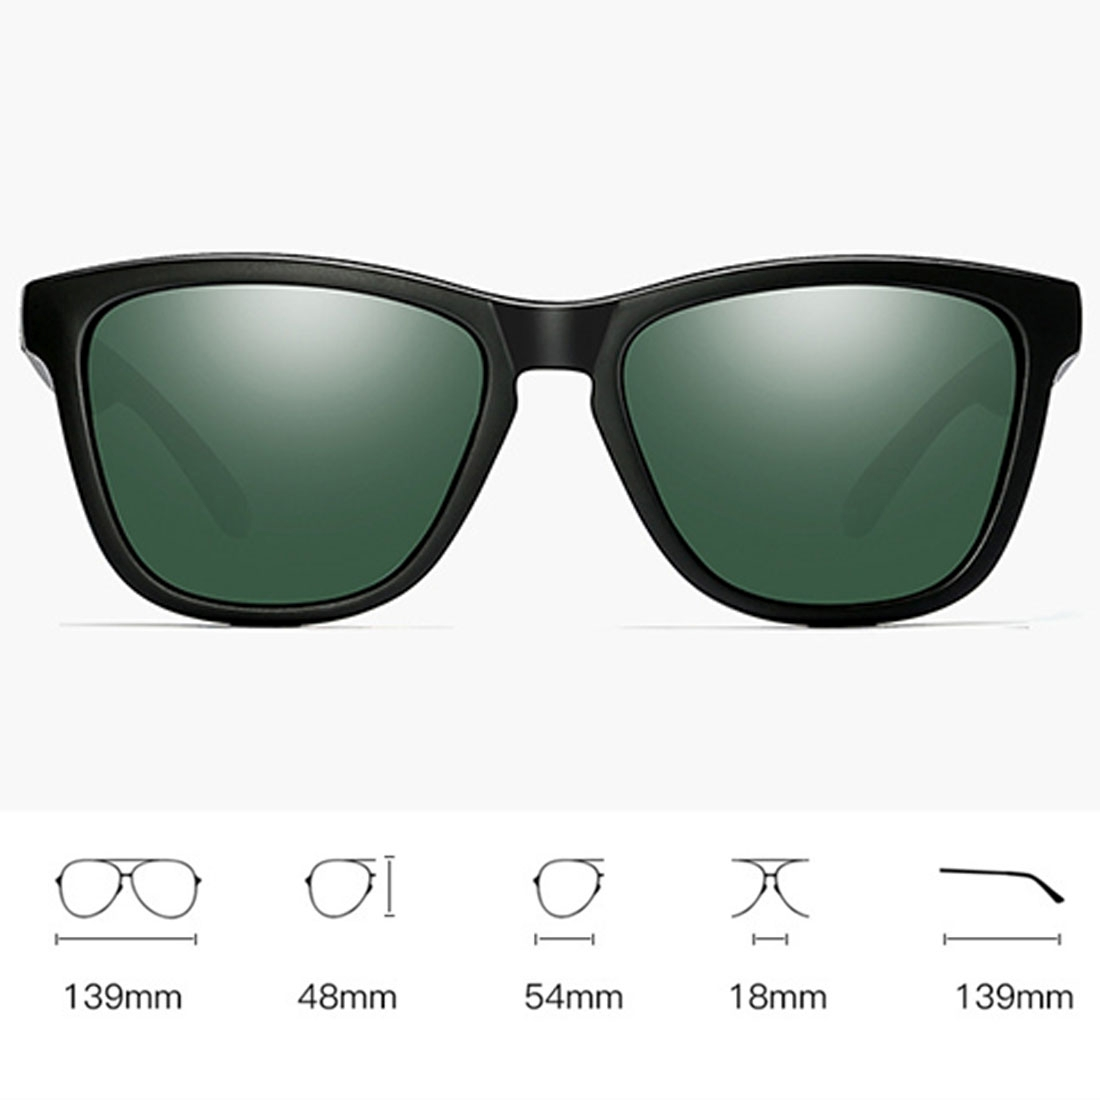 Unisex Retro Fashion Plastic Frame UV400 Polarized Sunglasses (Matte Black + G15 Green)